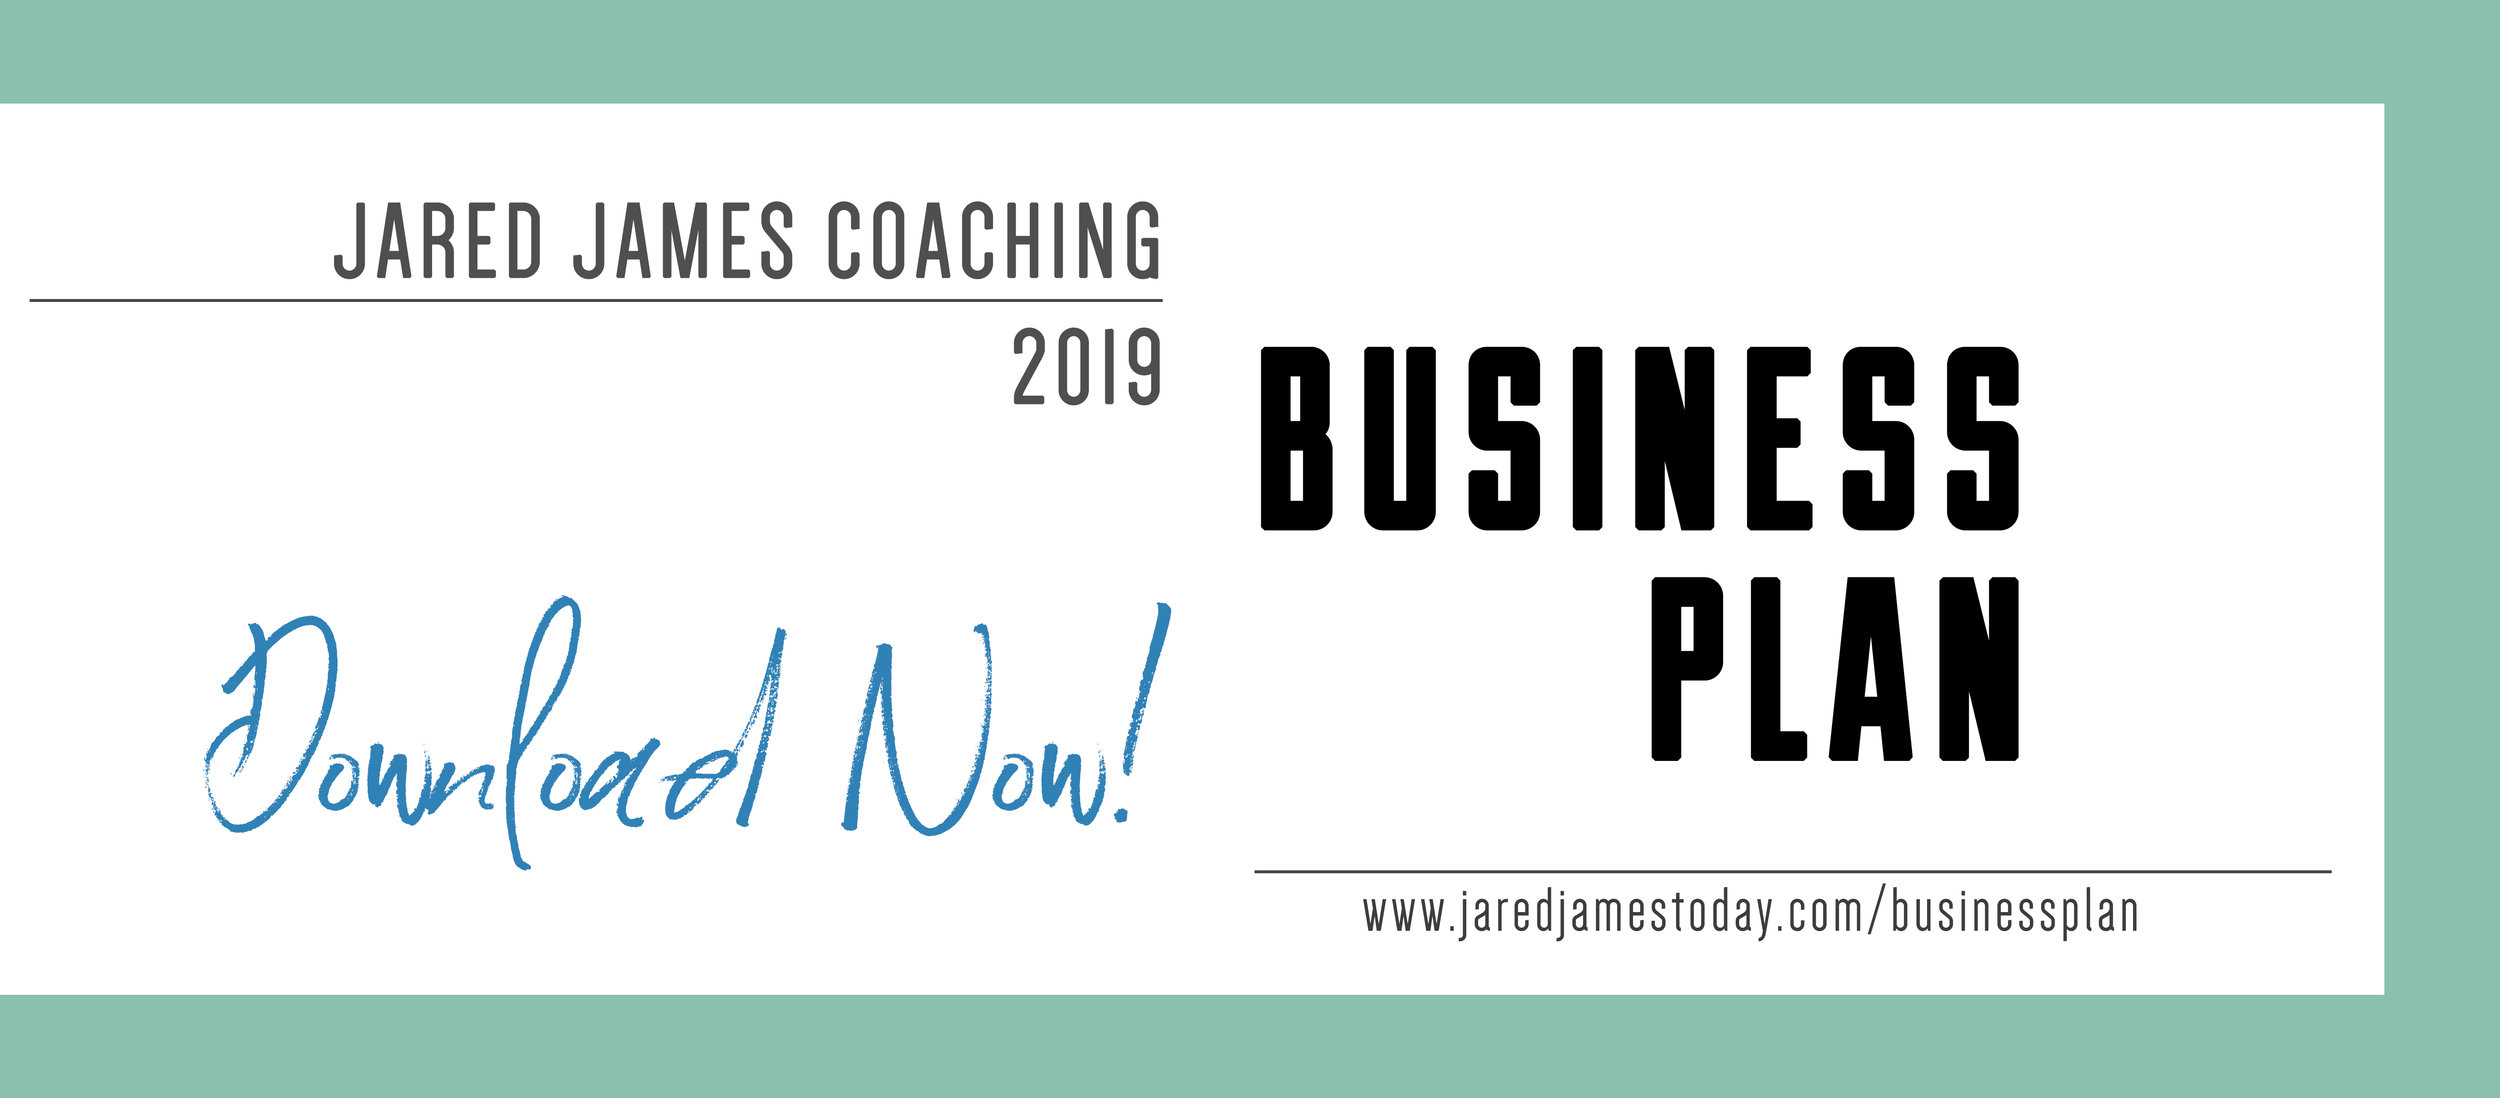 Download Jared James 2019 Business Plan Now!